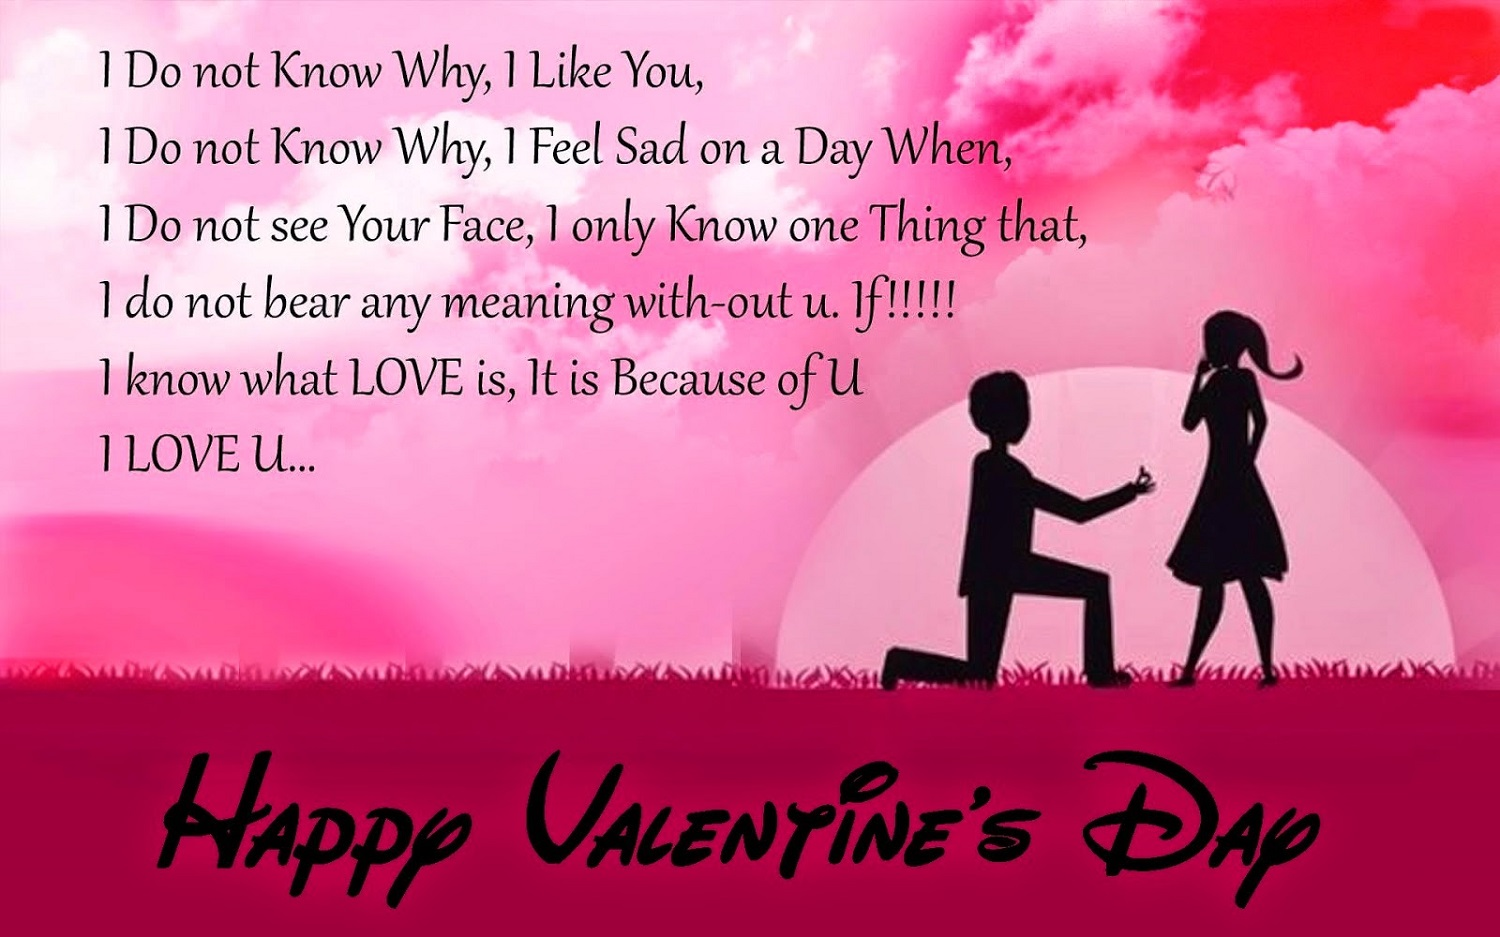 Happy Valentines Day 2018 poems Images Quotes Messages Wishes